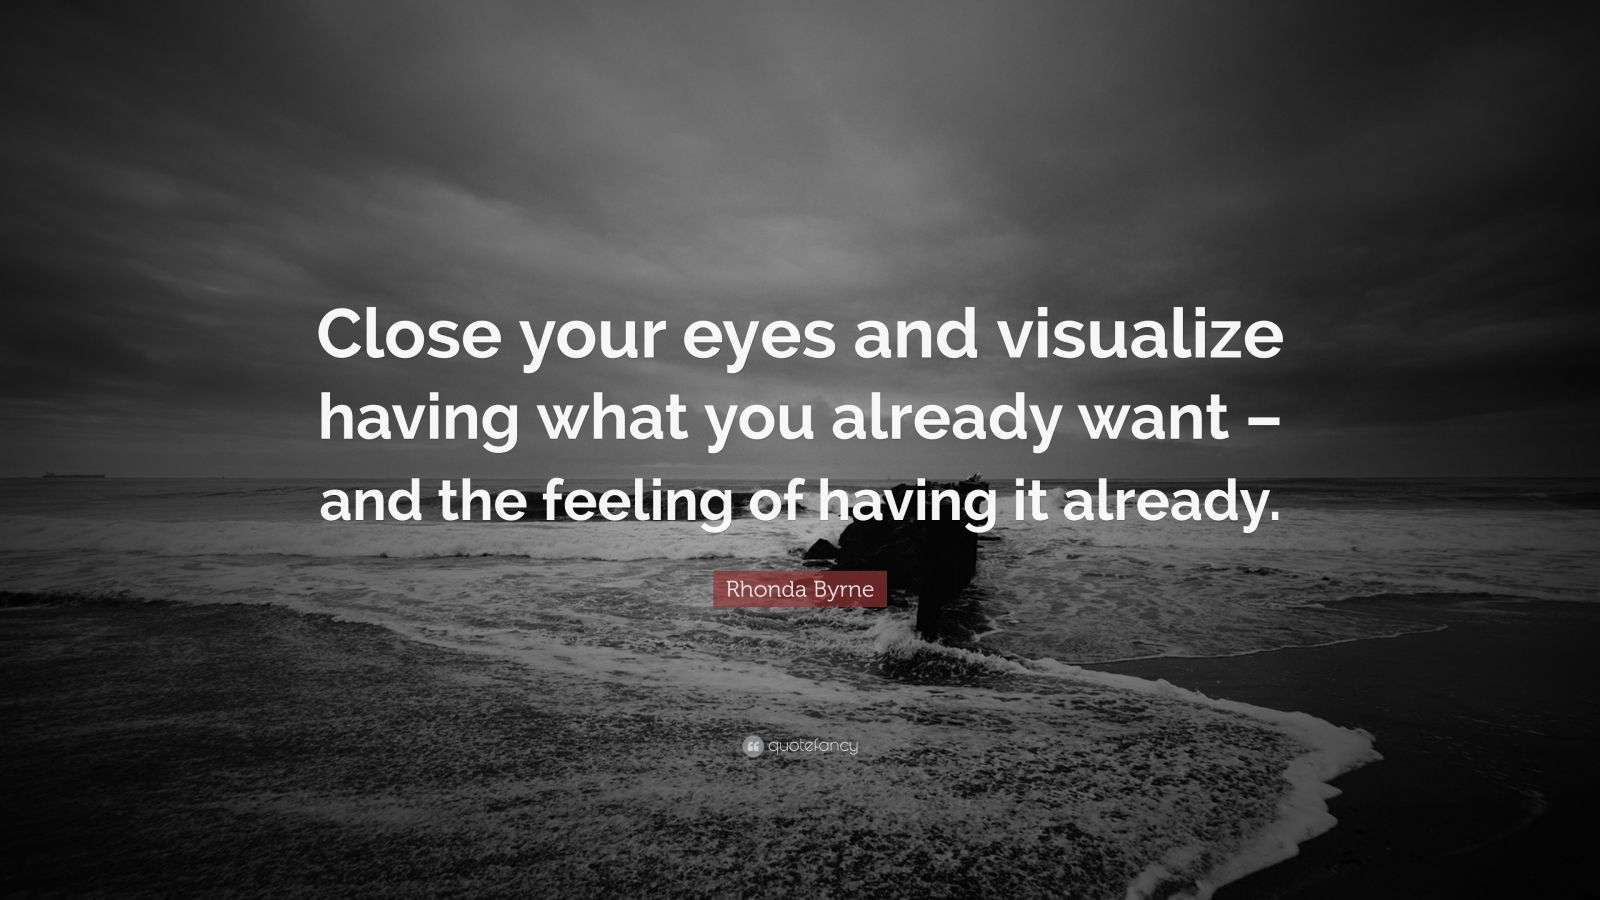 """Rhonda Byrne Quote: """"Close your eyes and visualize having what you already want – and the feeling of having it already."""""""